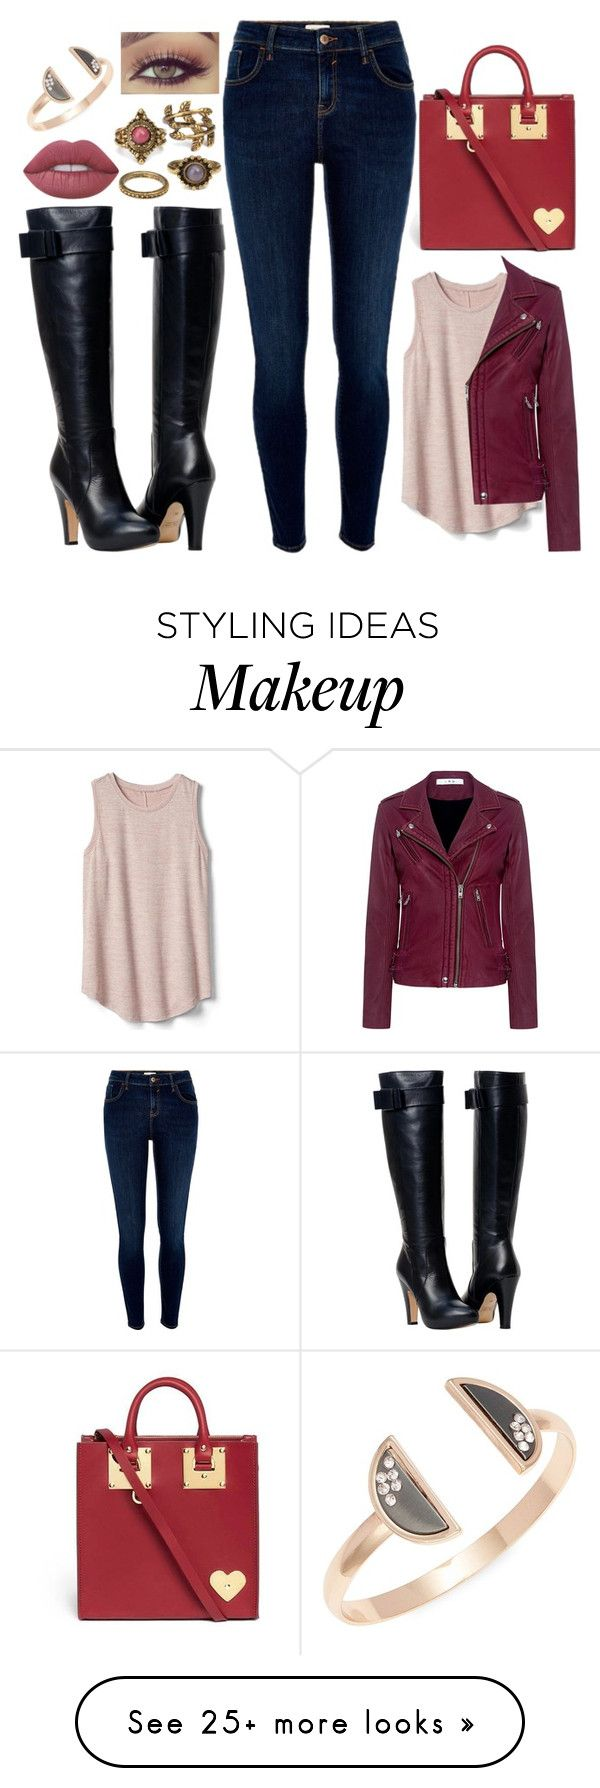 """""""Feel Alive"""" by puppydog28 on Polyvore featuring River Island, Gap, IRO, Sophie Hulme, Lime Crime and Design Lab"""